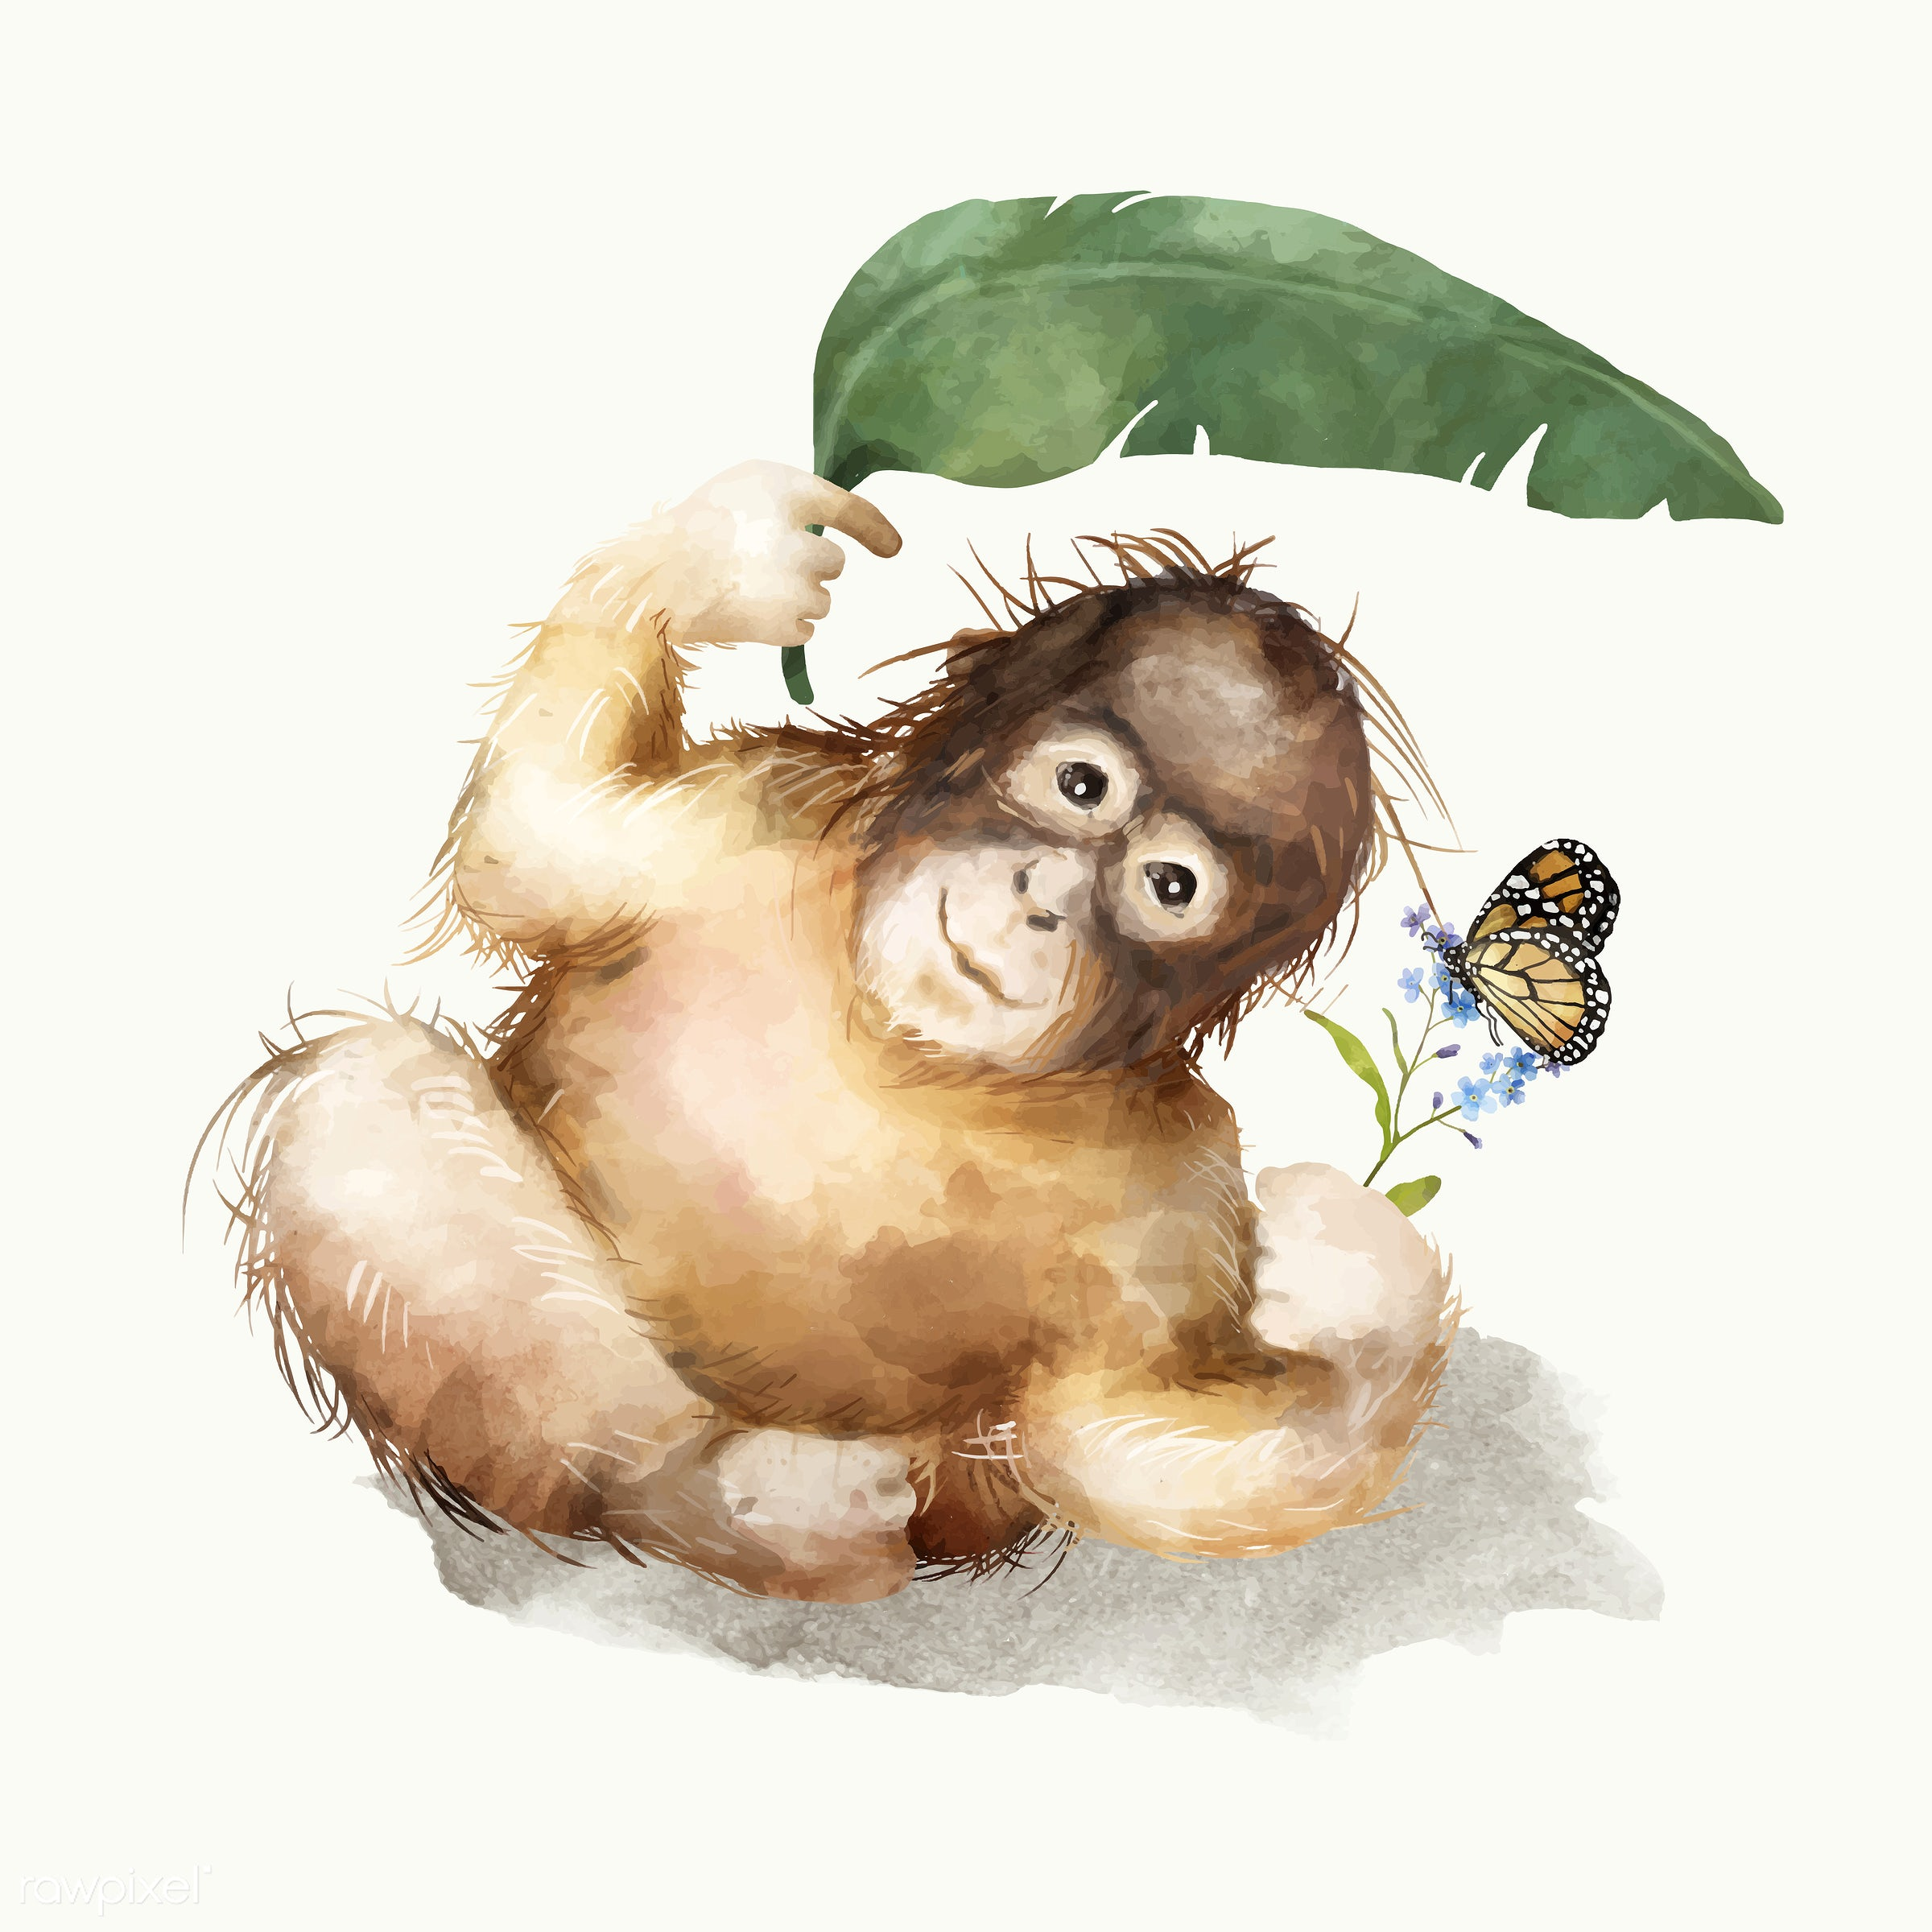 Illustration of a baby chimpanzee - animals, baby, cheerful, child, chimpanzee, color, colored, creature, cute, fun, graphic...